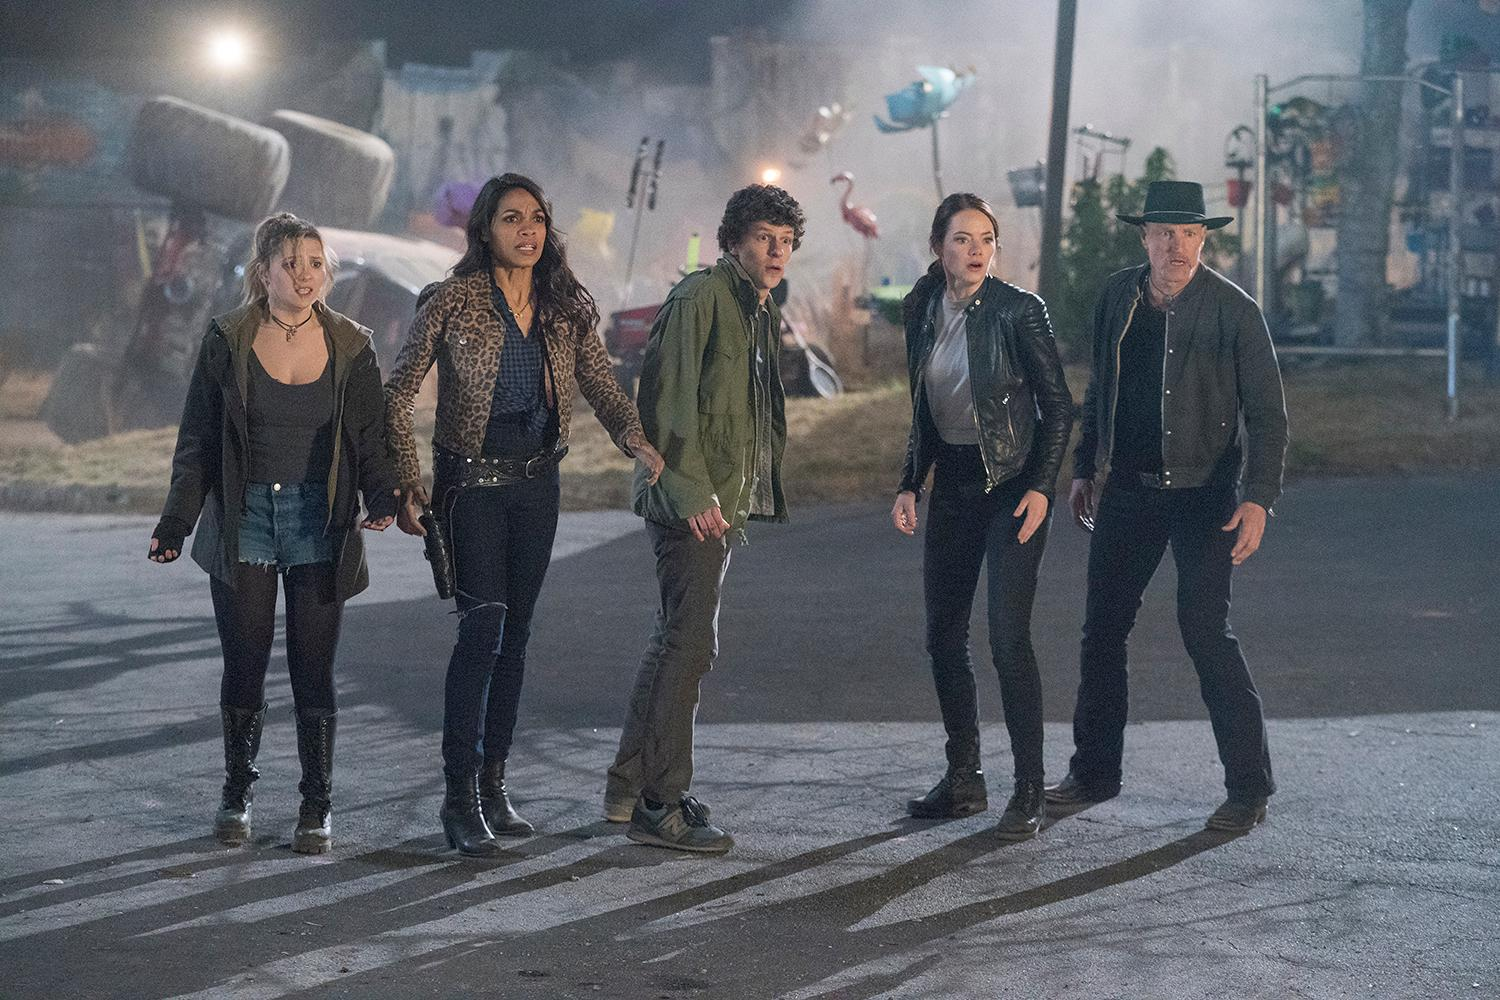 Woody Harrelson (Tallahassee)  Jesse Eisenberg (Columbus)  Emma Stone (Wichita)  Abigail Breslin (Little Rock)  Rosario Dawson (Nevada) in Columbia Pictures' ZOMBIELAND 2: DOUBLE TAP.